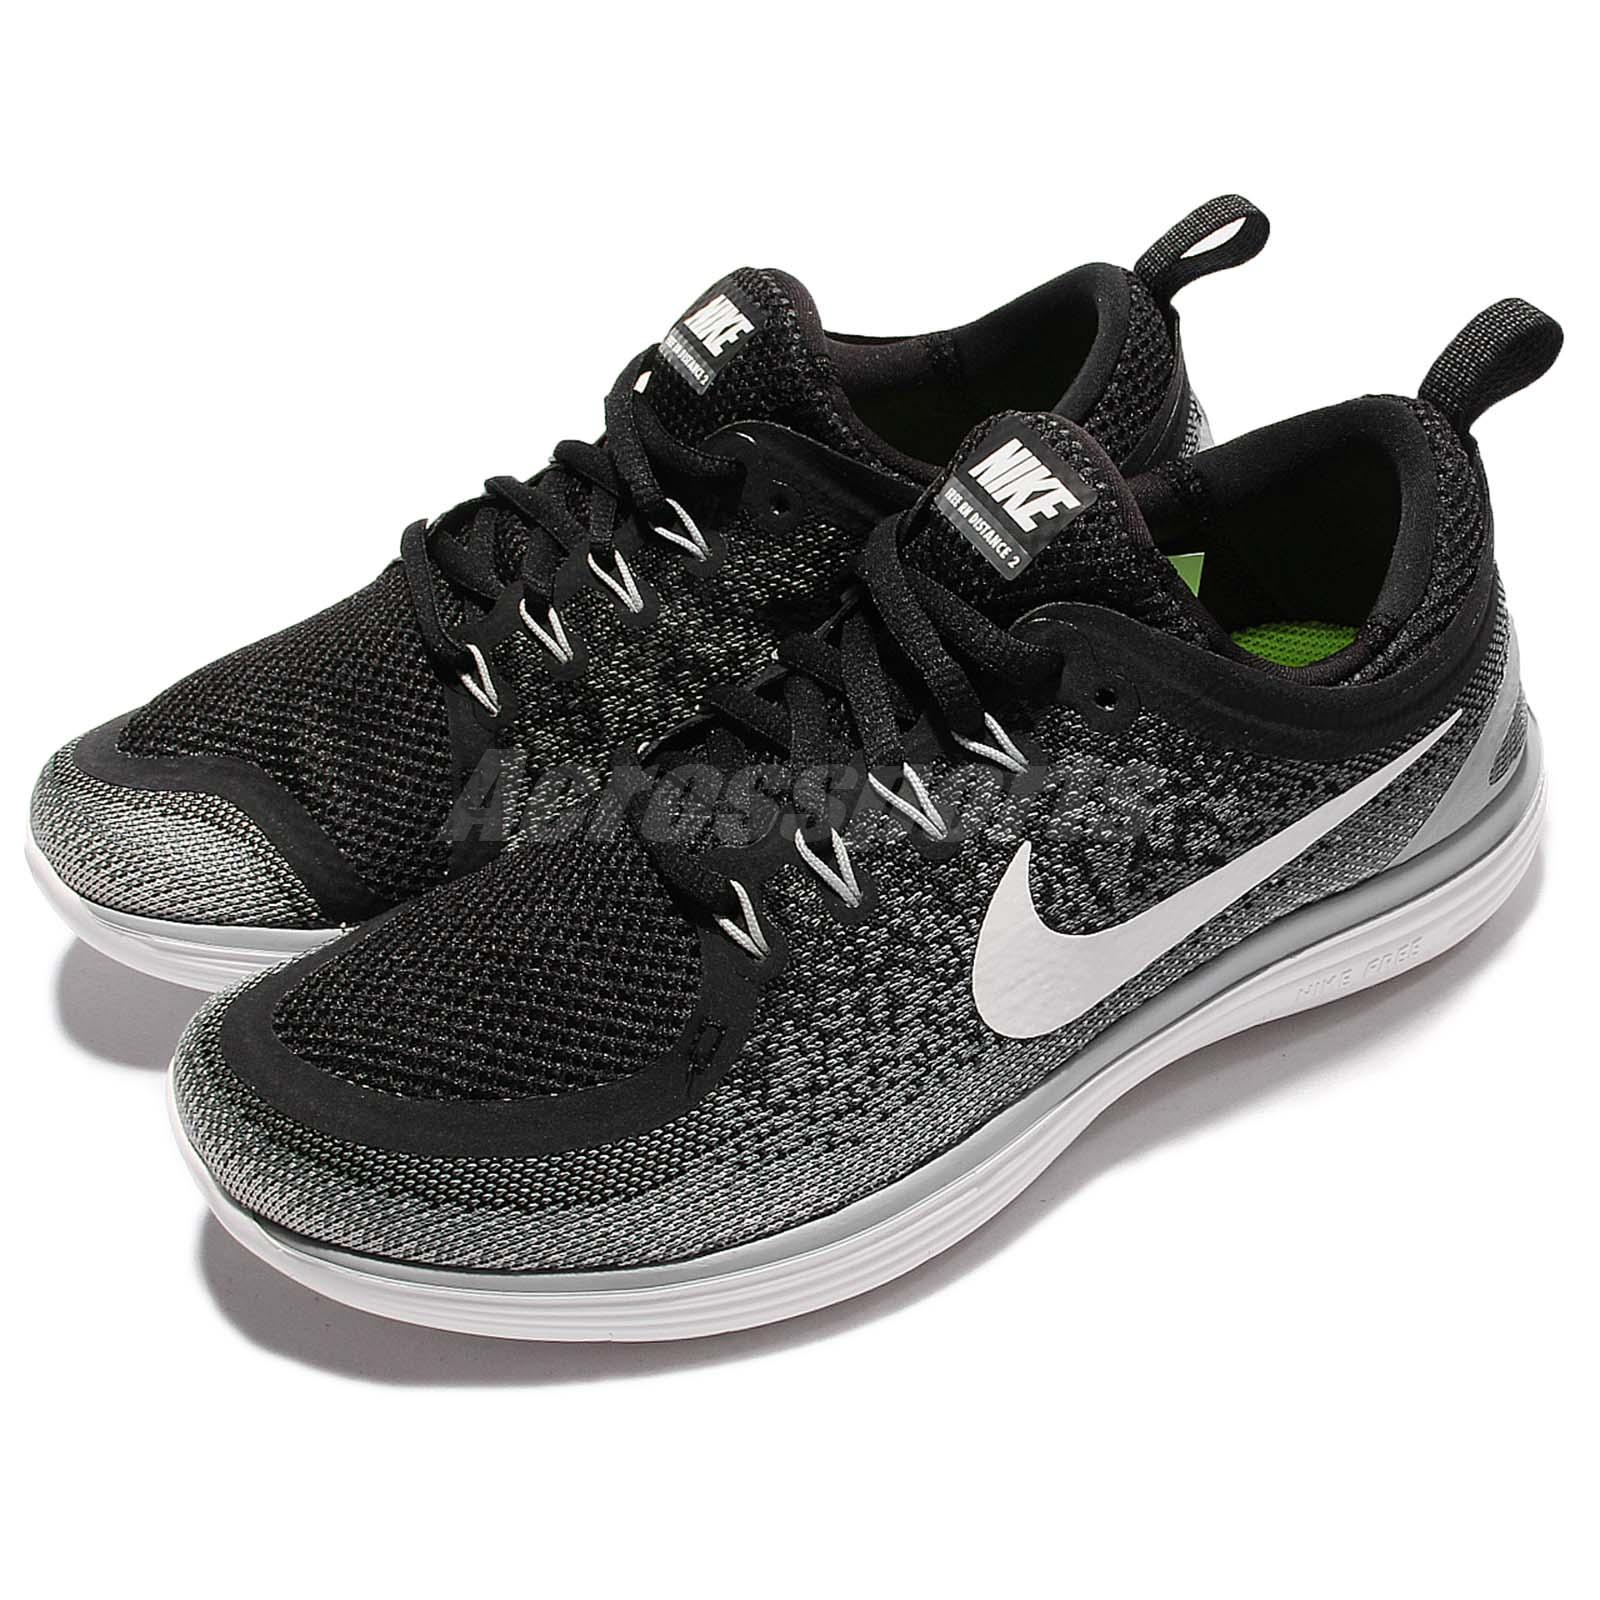 3e92b5e63f612 Details about Wmns Nike Free RN Distance 2 Run Black White Women Running  Shoes 863776-001